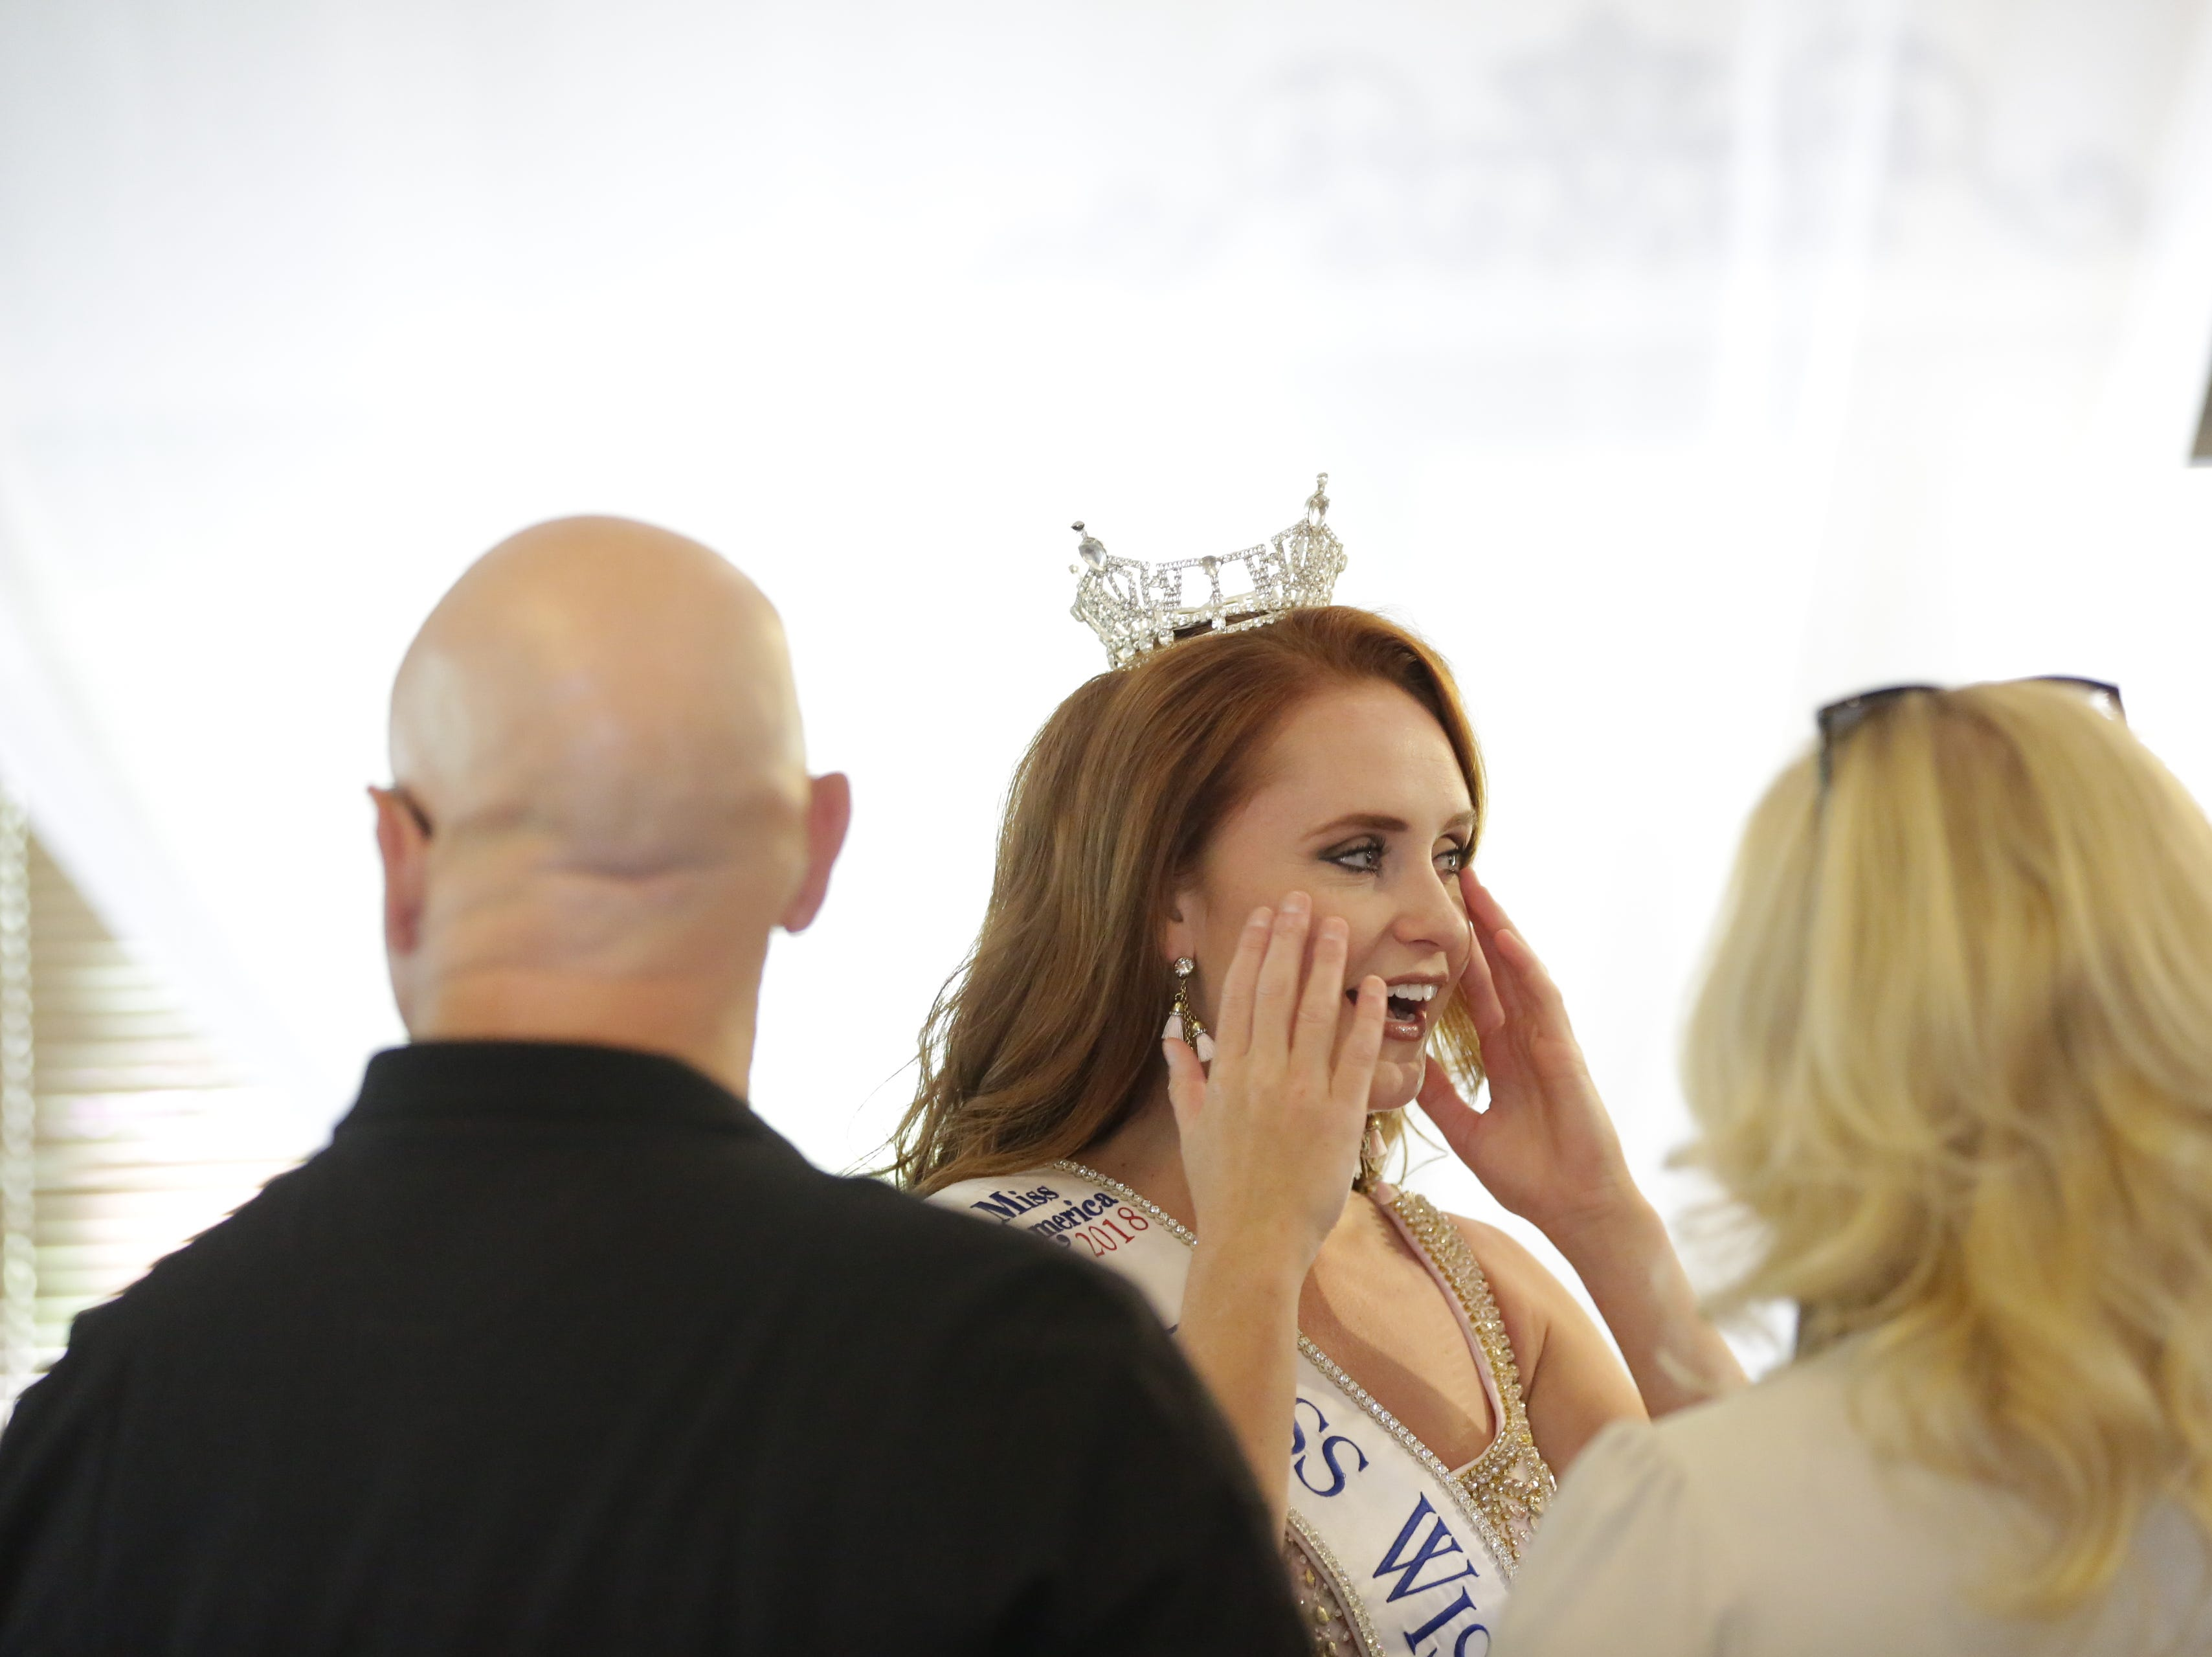 Miss Wisconsin 2018 Tianna Vanderhei talks with friends at her Miss America send off party at Ridges Golf Course and Banquet Facility in Wisconsin Rapids on Sunday, Aug. 12, 2018. Vanderhei will compete in the 2019 Miss America Competition Sunday, Sept. 9, 2018 in Atlantic City, New Jersey.